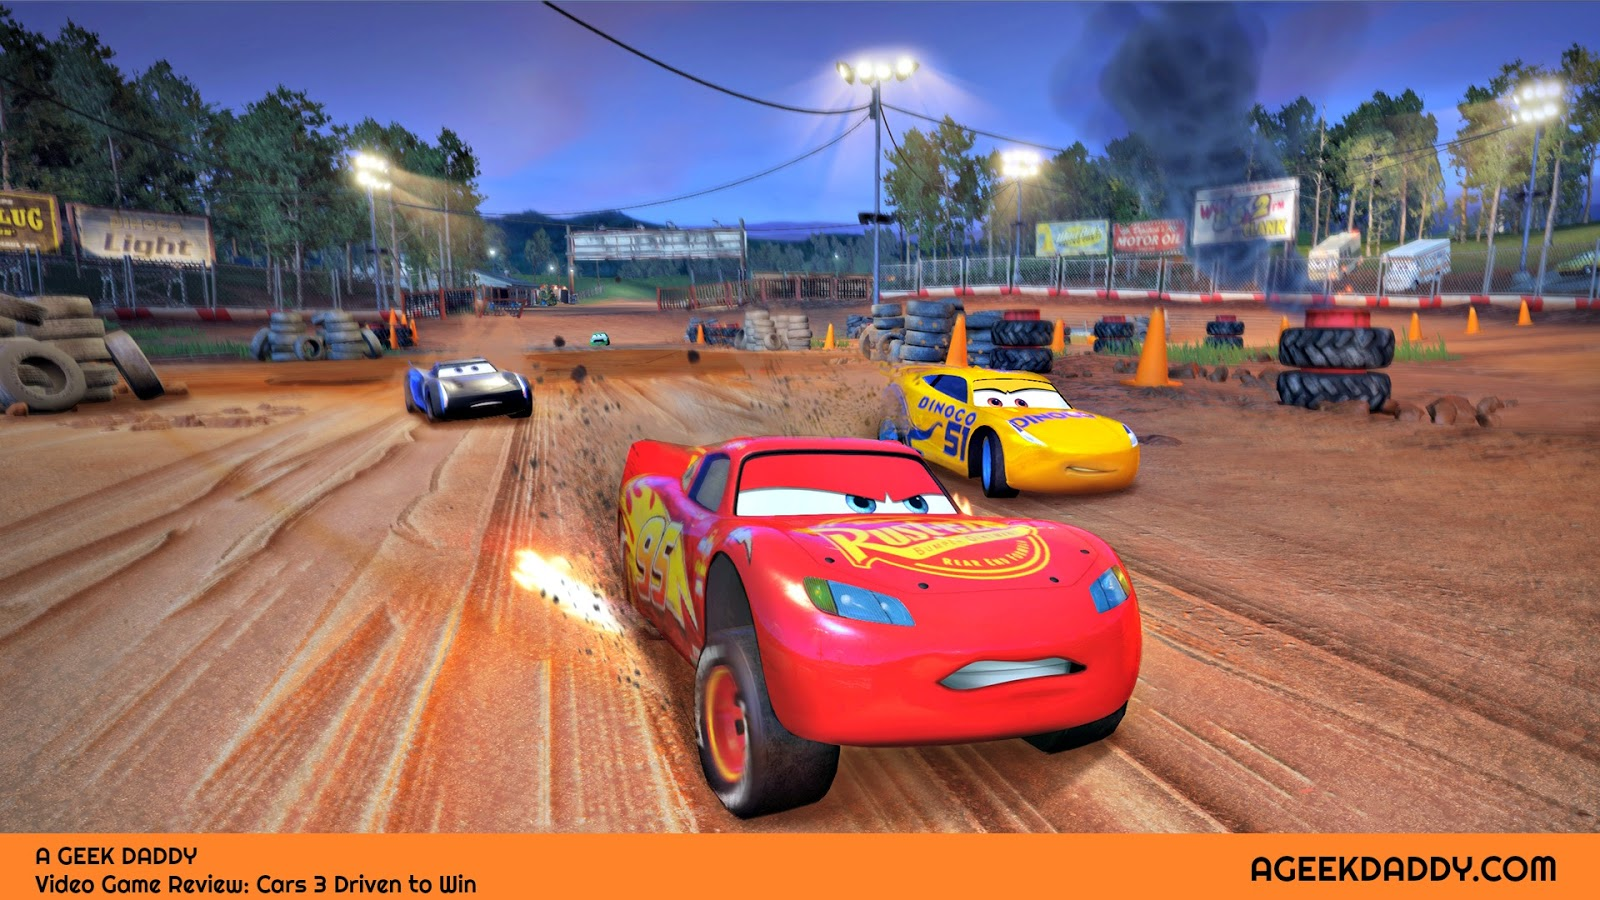 A GEEK DADDY: CARS 3 DRIVEN TO WIN VIDEO GAME